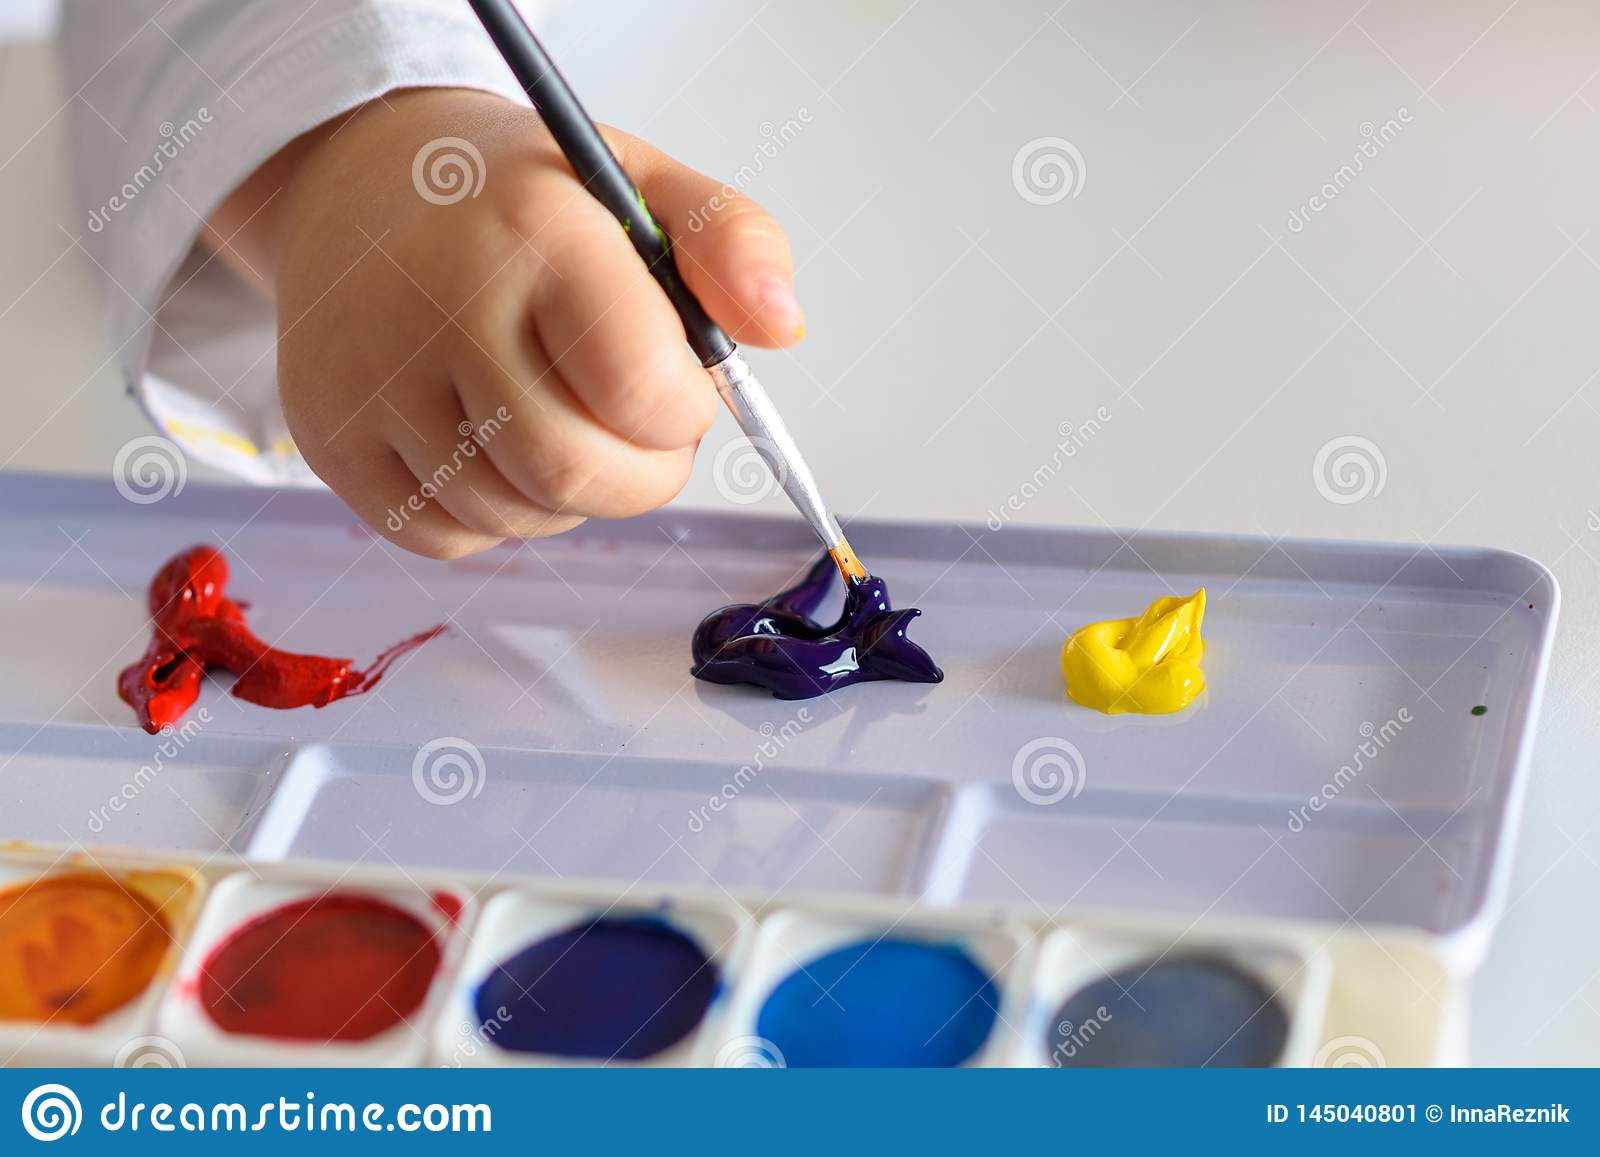 Child drawing with colorful colors.